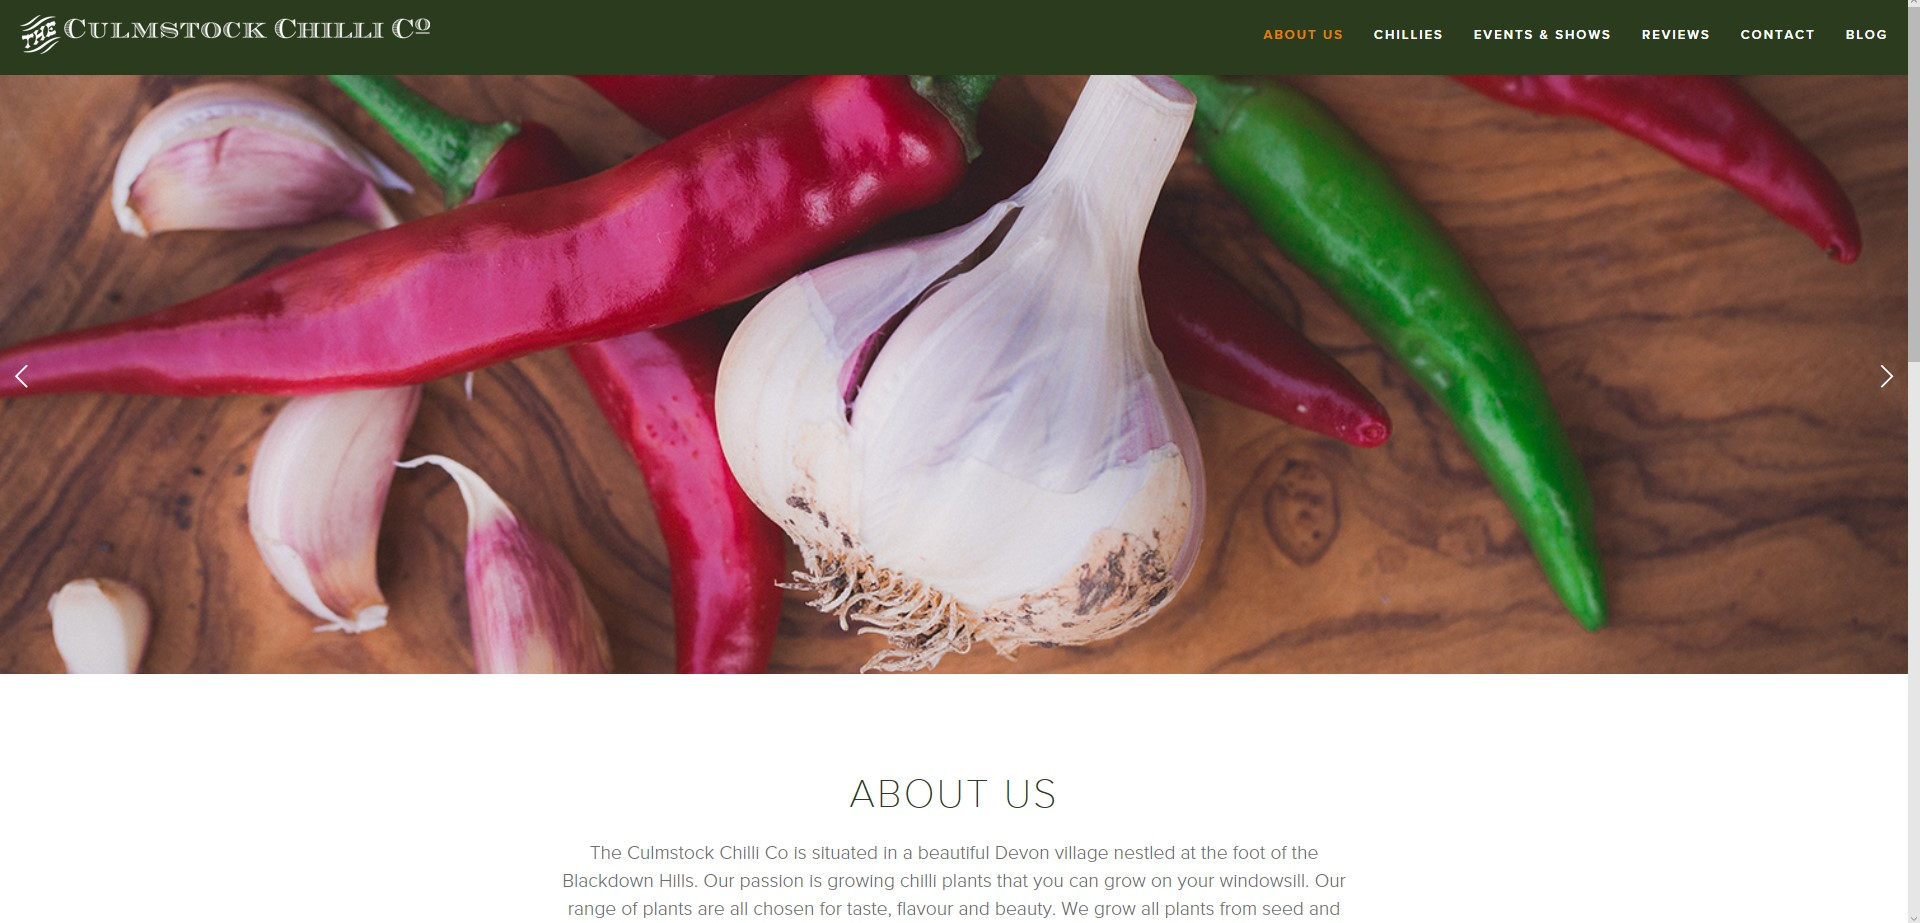 Screen shot of the About Us page on the Culmstock Chilli Co Website, commercial shoot by Perspectives Photography